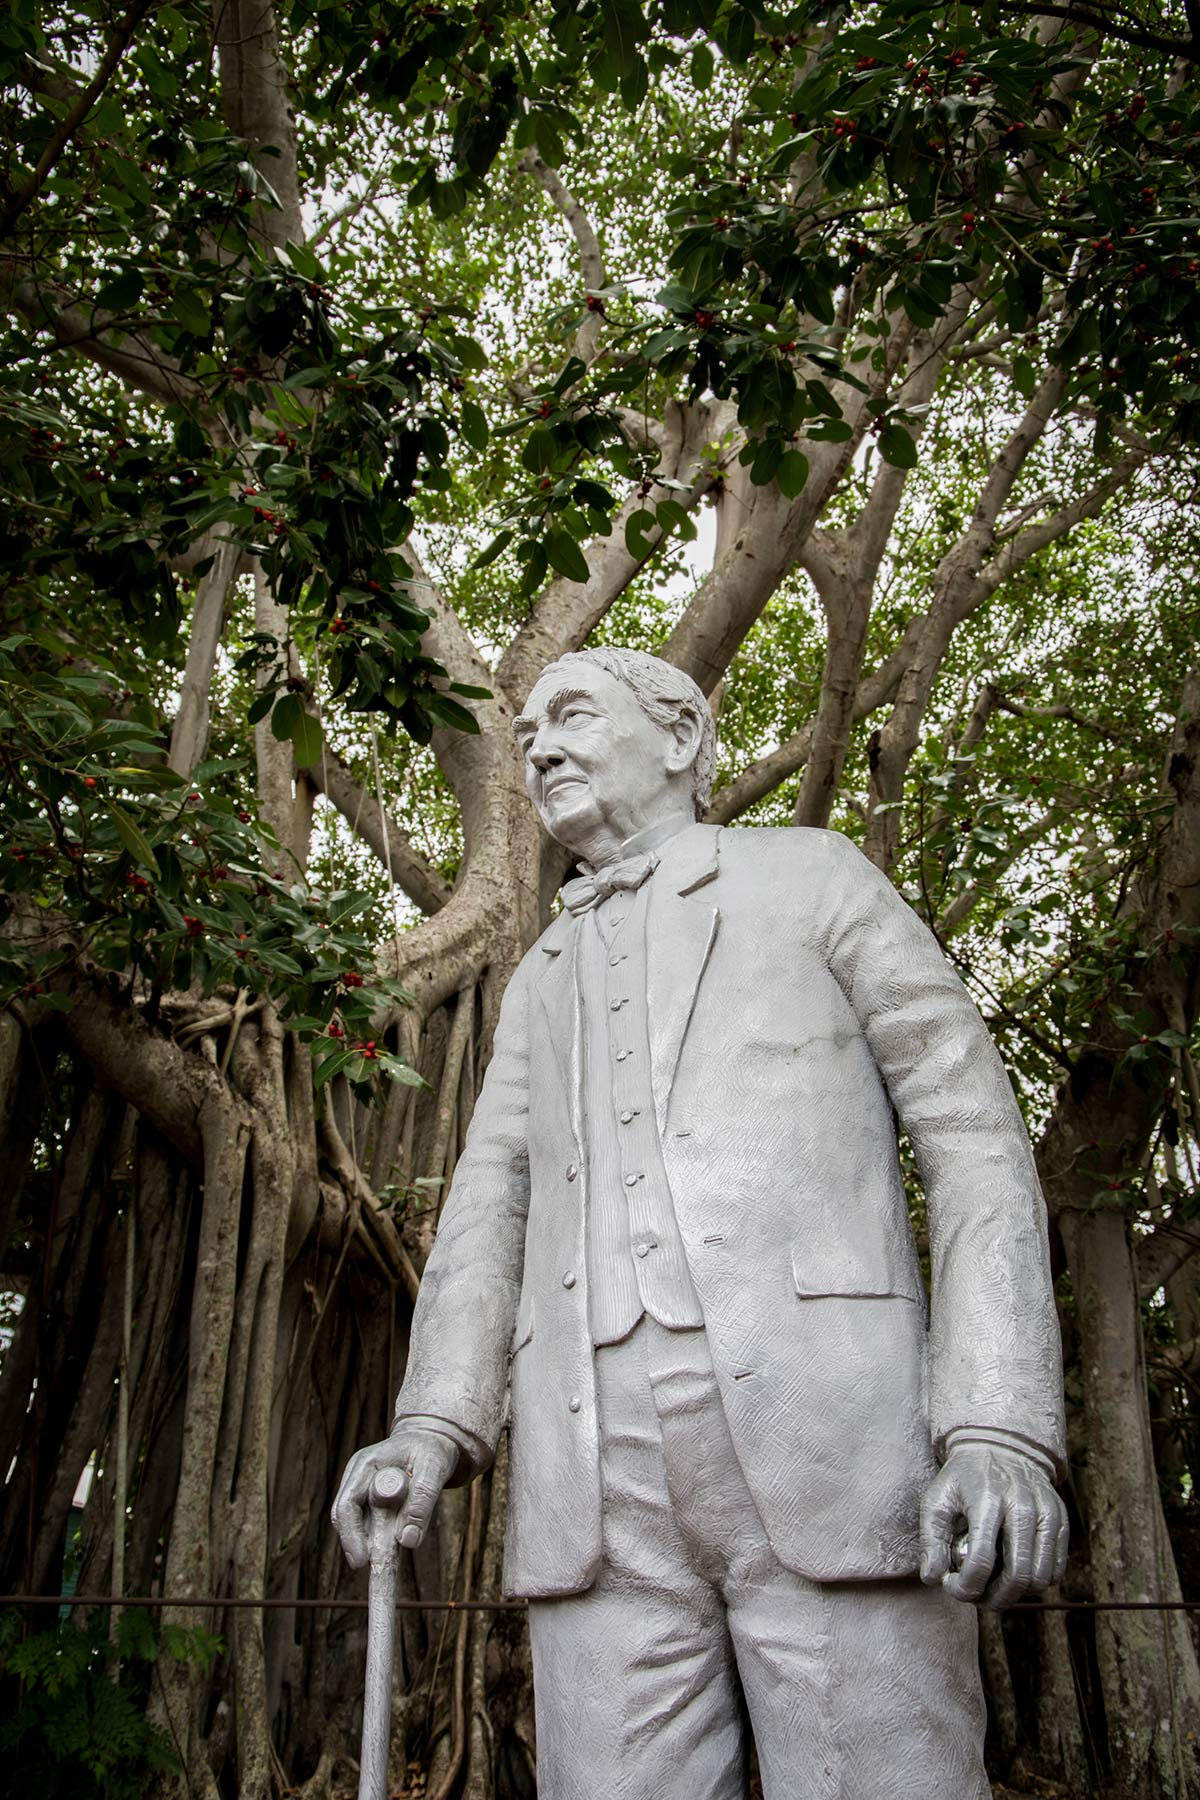 Thomas Edison Statue in Fort Myers